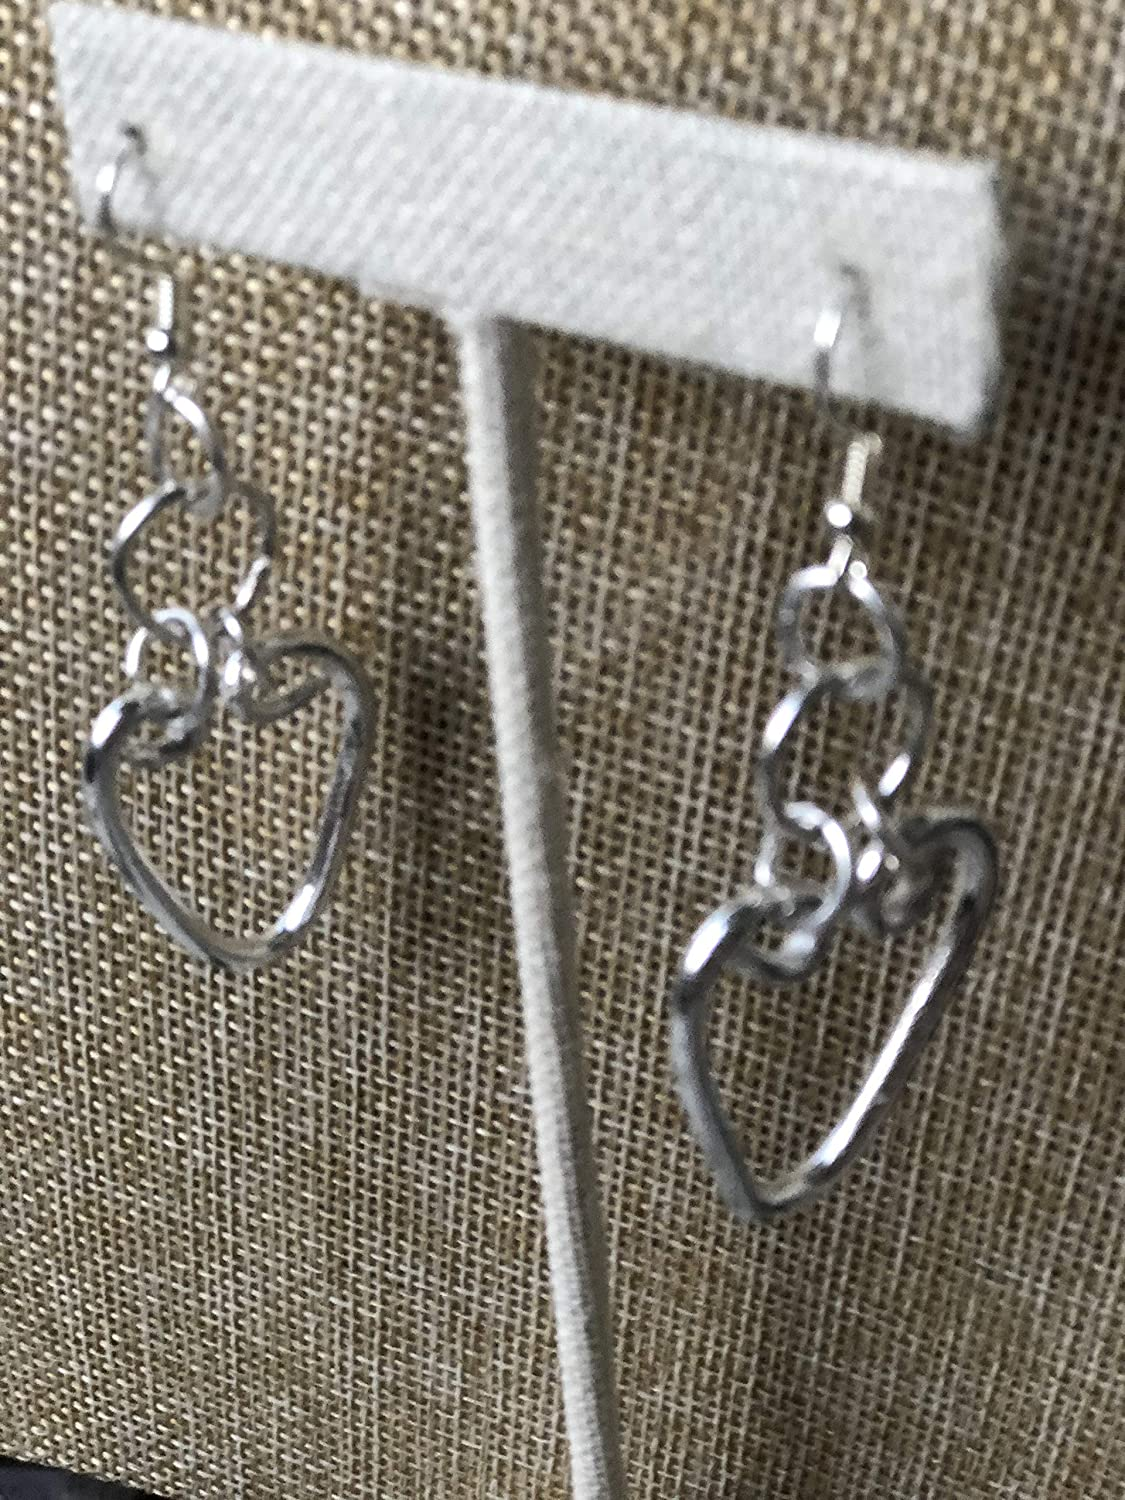 999 fine silver pendants earrings FREE worldwide shipping gift idea for her elegant and little one of a kind round made of filigree